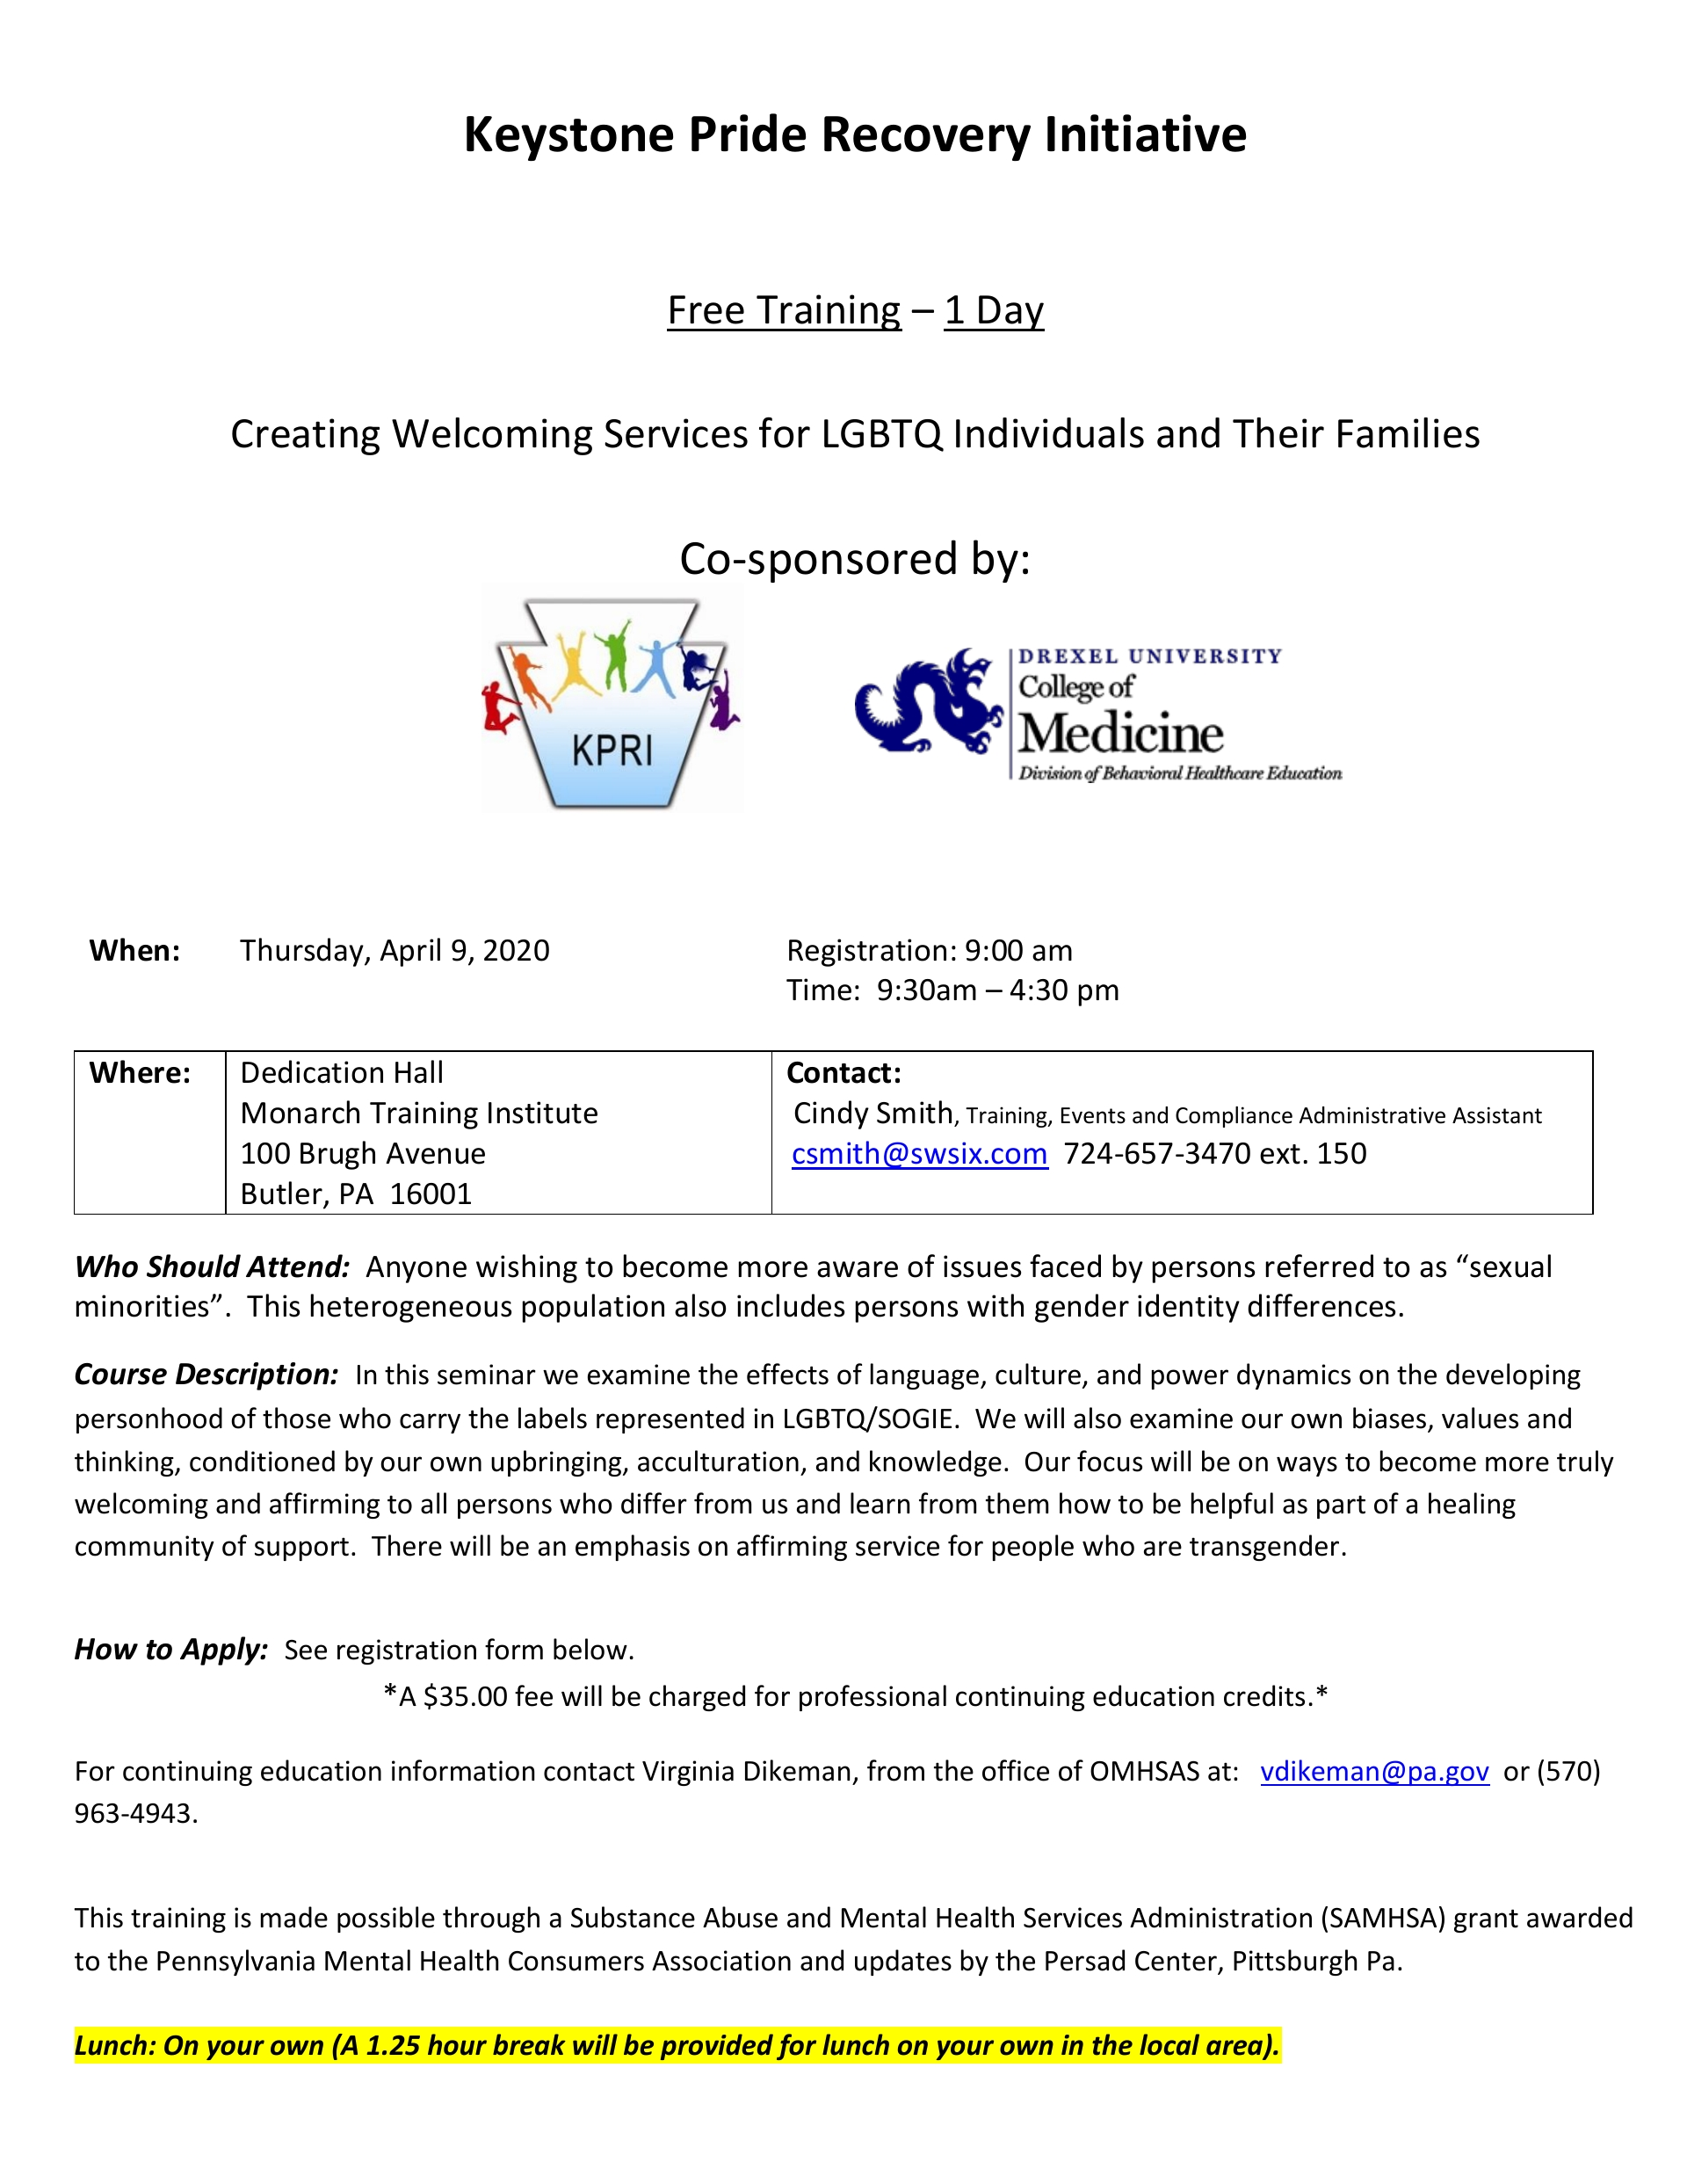 """Creating Welcoming Services for LGBTQ Individuals and Their Families."" Butler County April 2020"